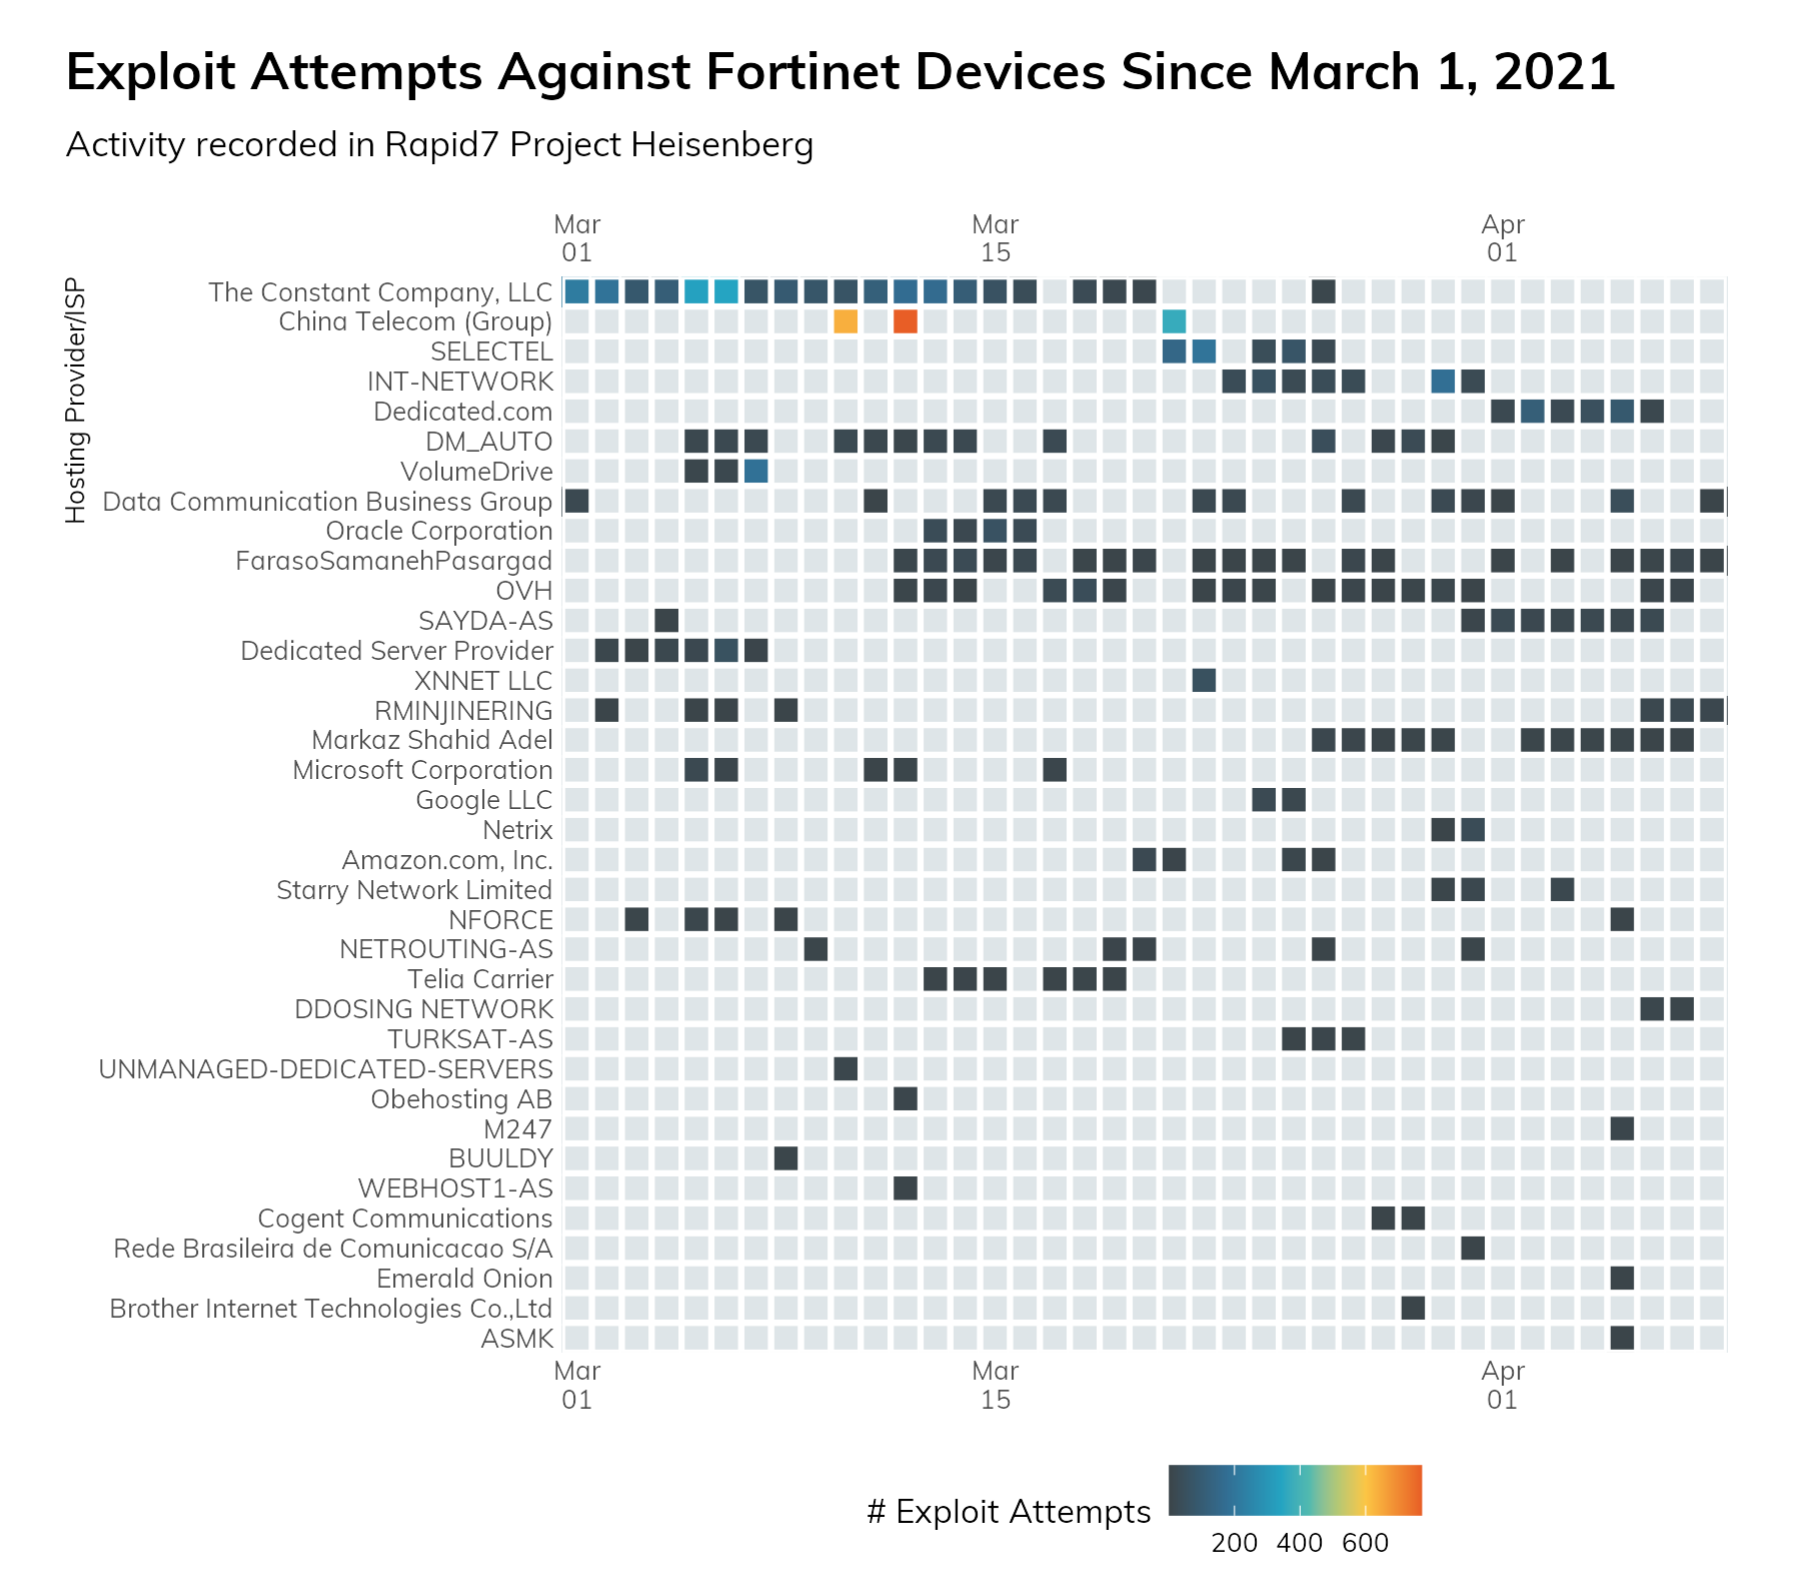 Attackers Targeting Fortinet Devices and SAP Applications